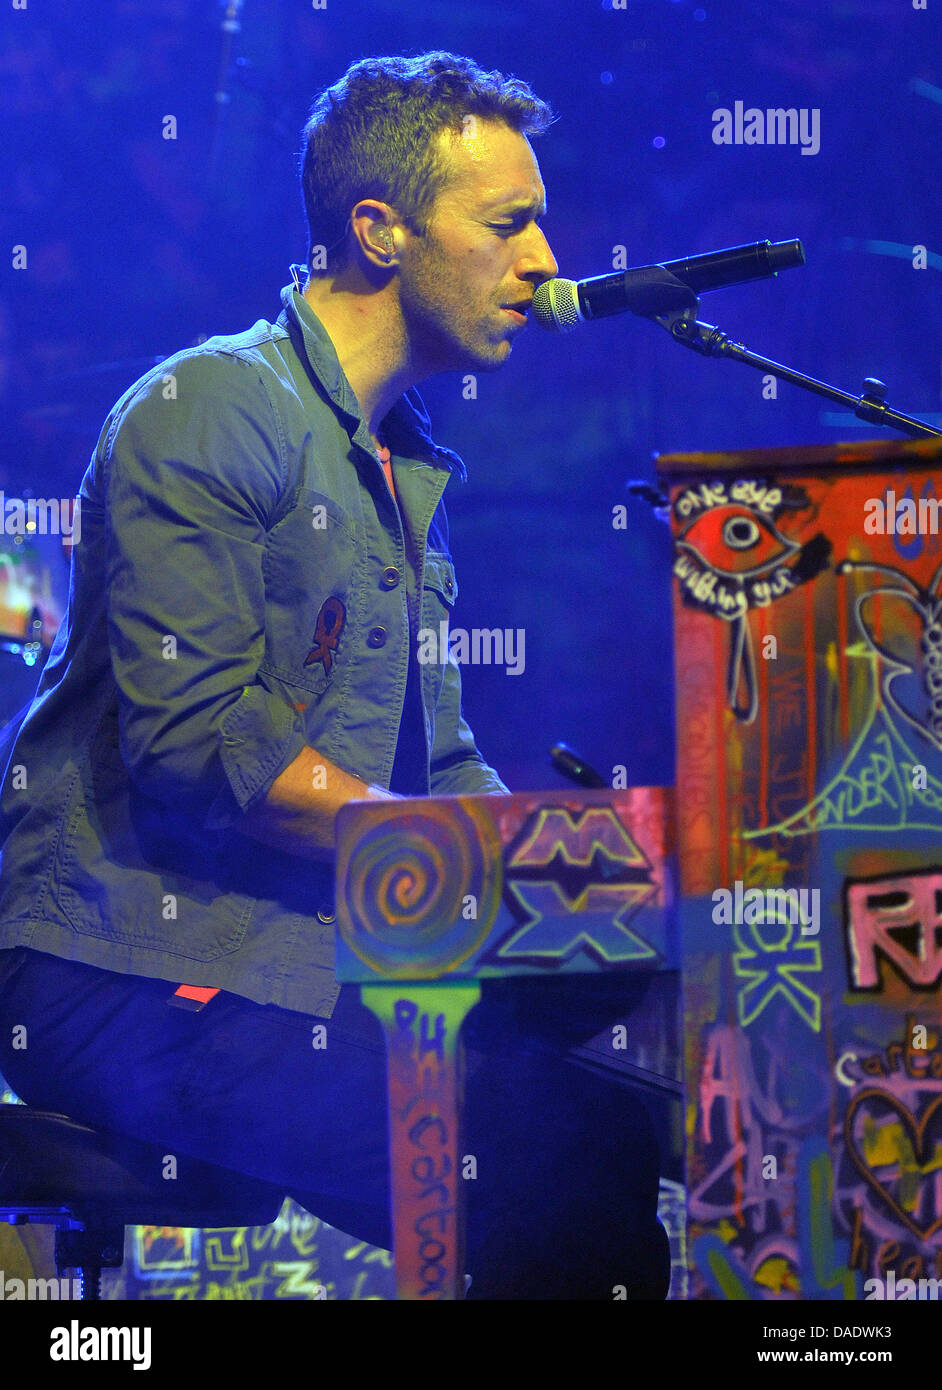 Singer chris martin of the band coldplay plays piano during a concert at the e werk in cologne germany 02 november 2011 tickets for the concert were